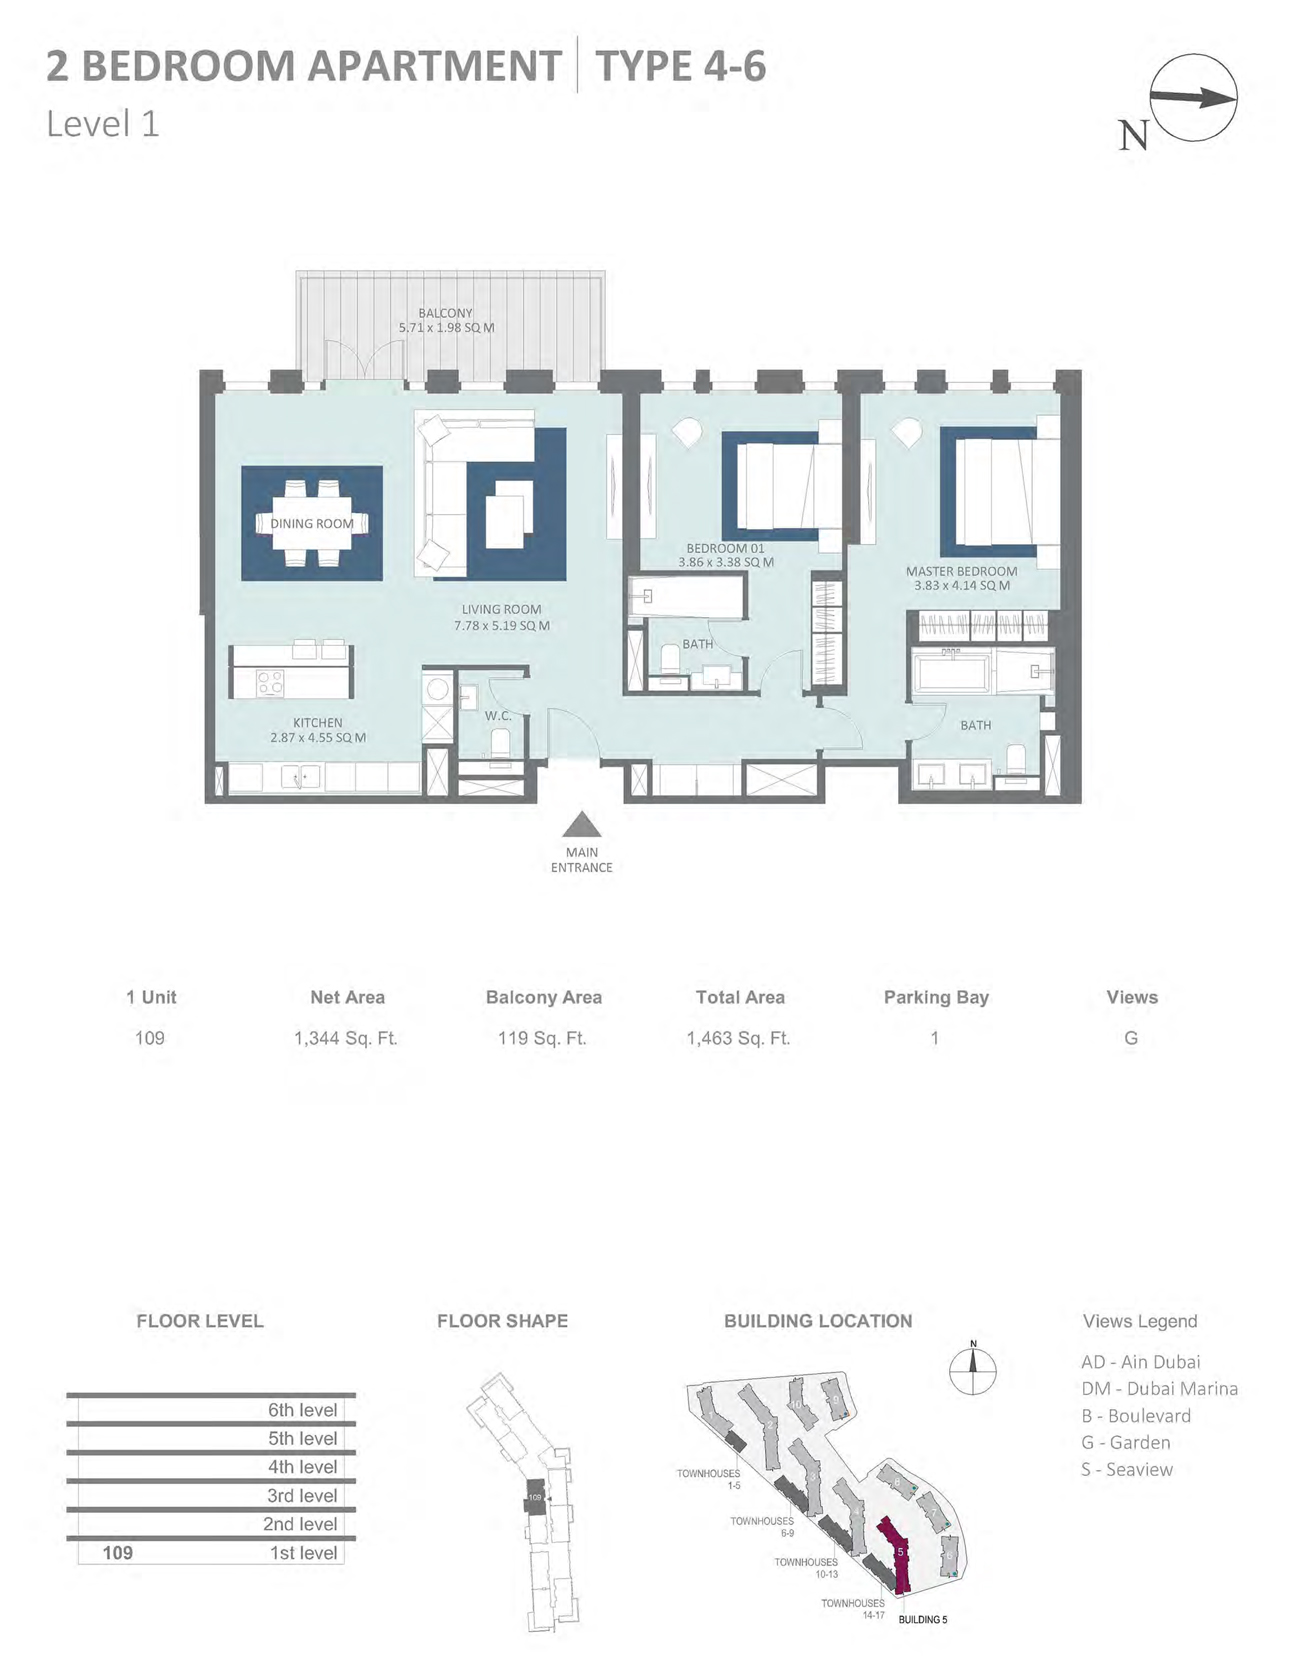 Building 5 - 2 Bedroom Type 4-6 Level 1 , Size 1344    sq. ft.